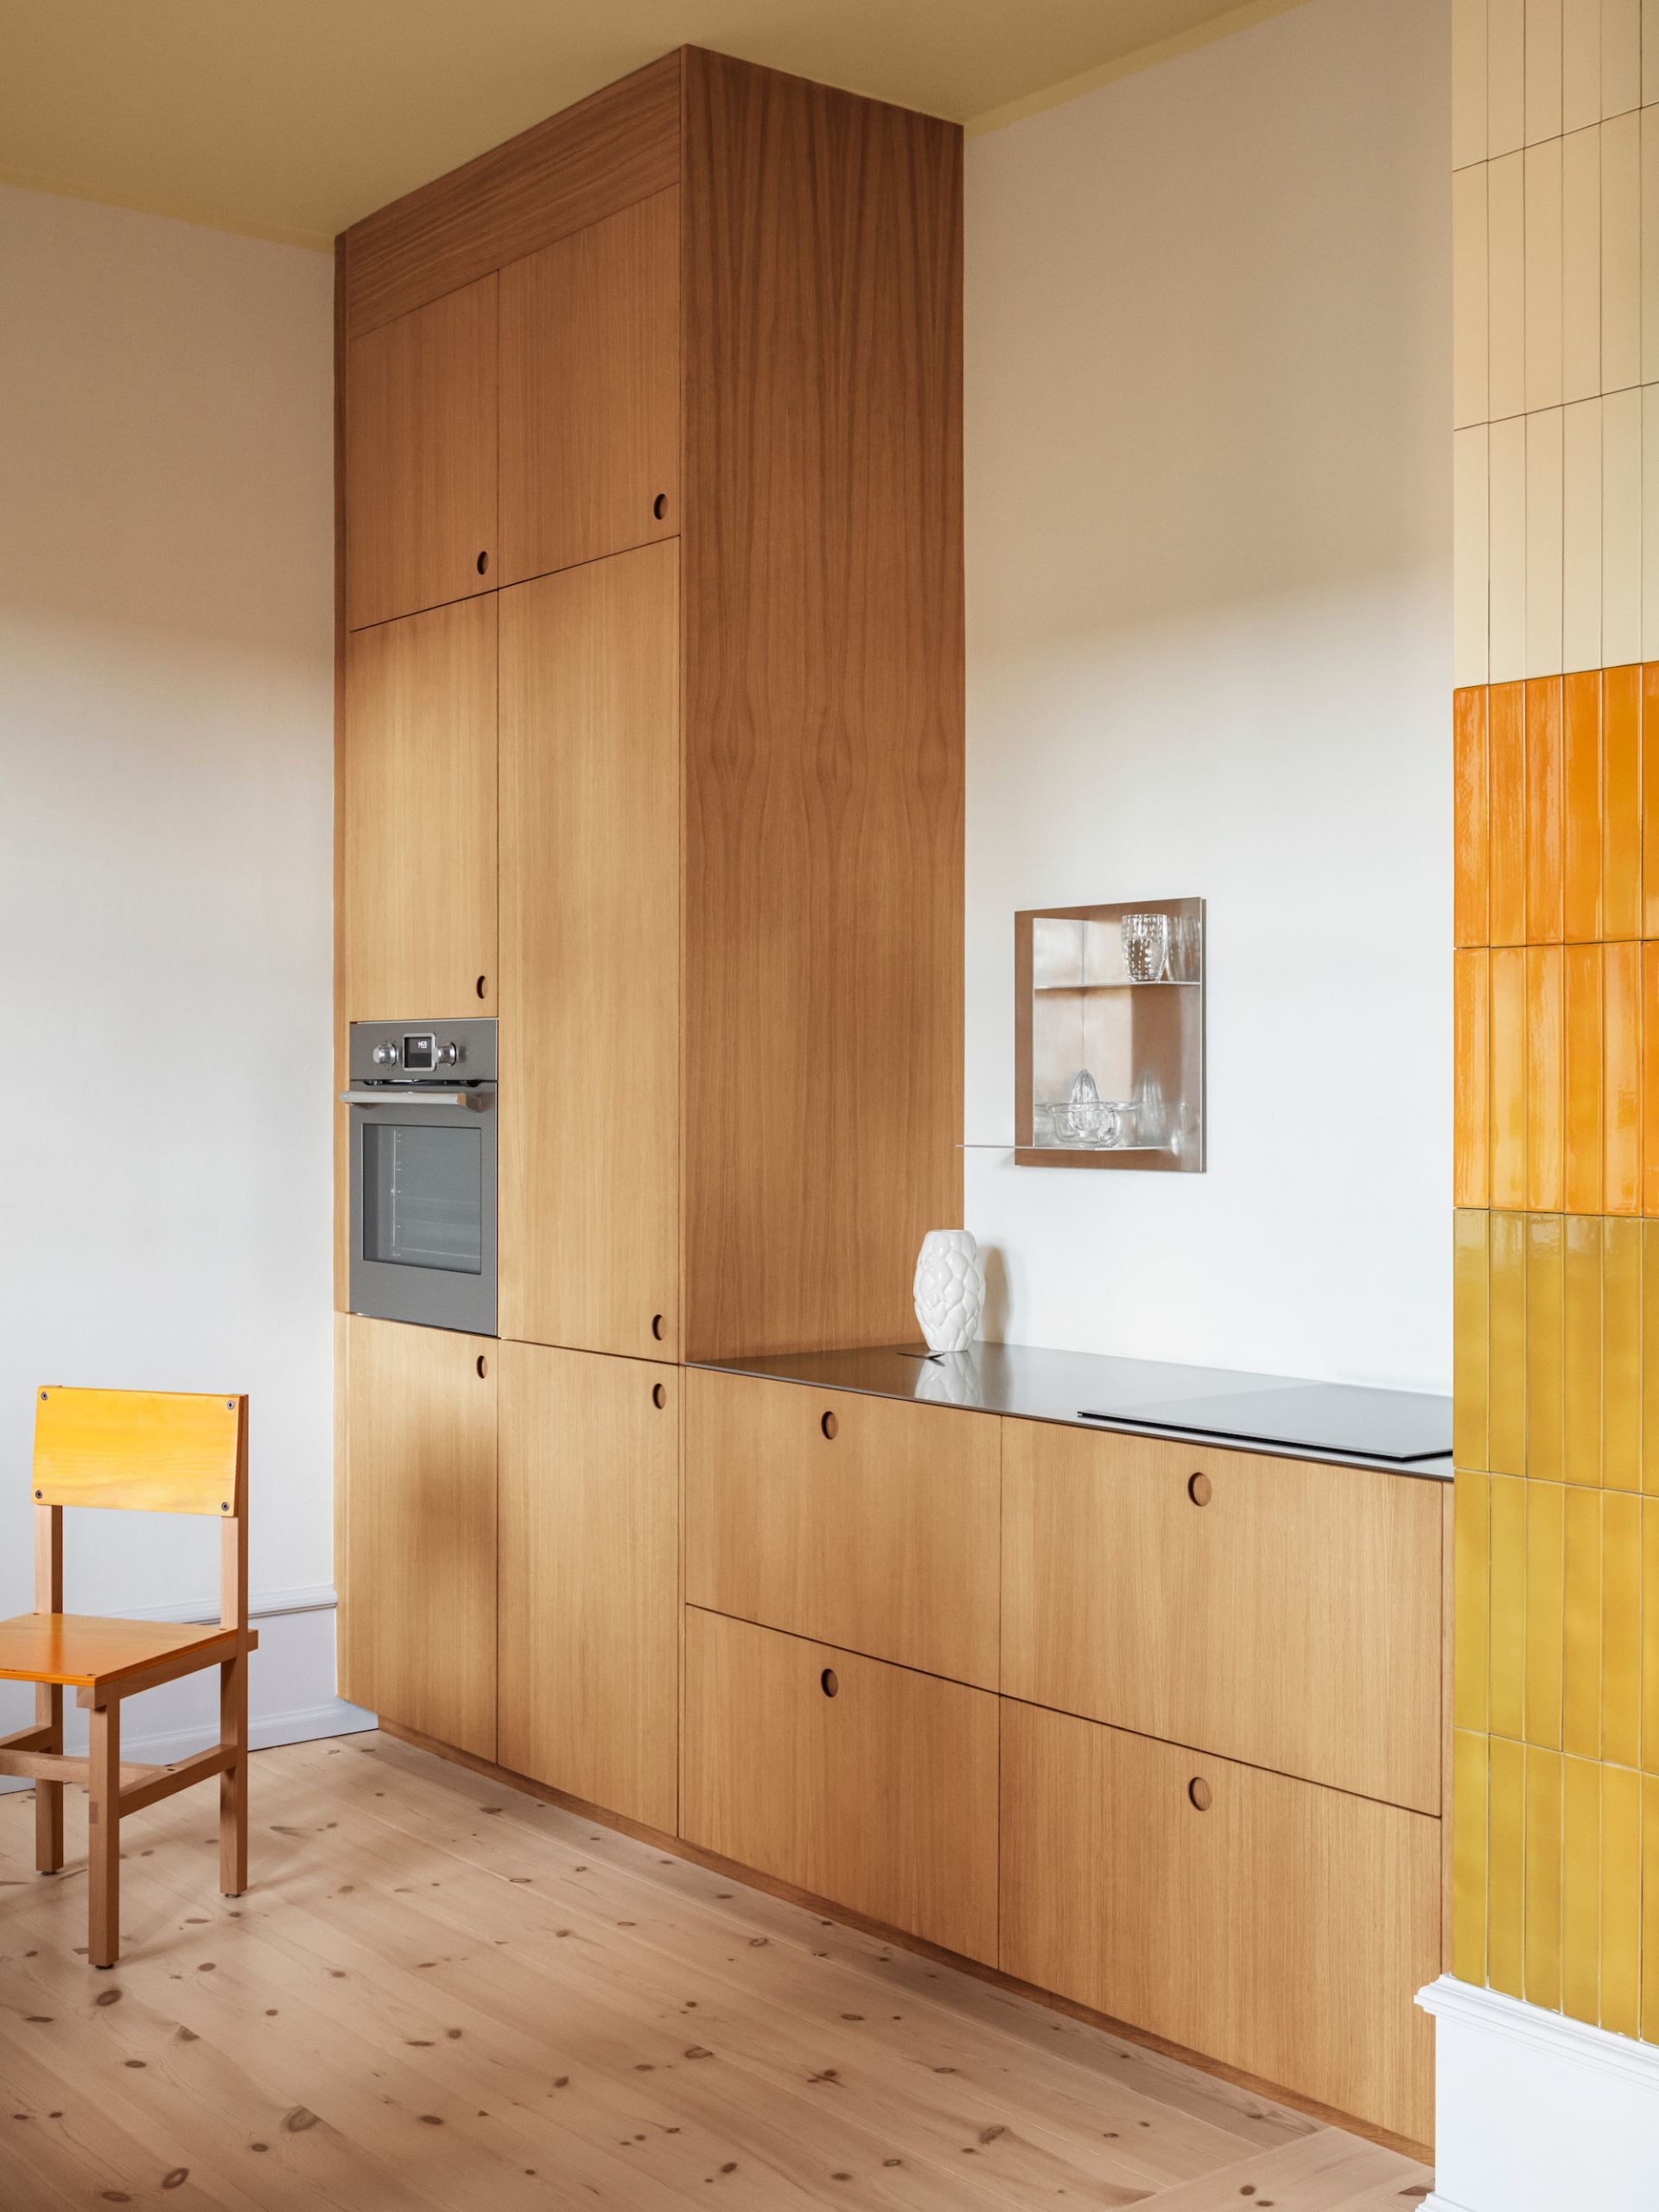 Kitchen of the Week: A Sunny-Hued Kitchen in Copenhagen for an Art Director - Remodelista